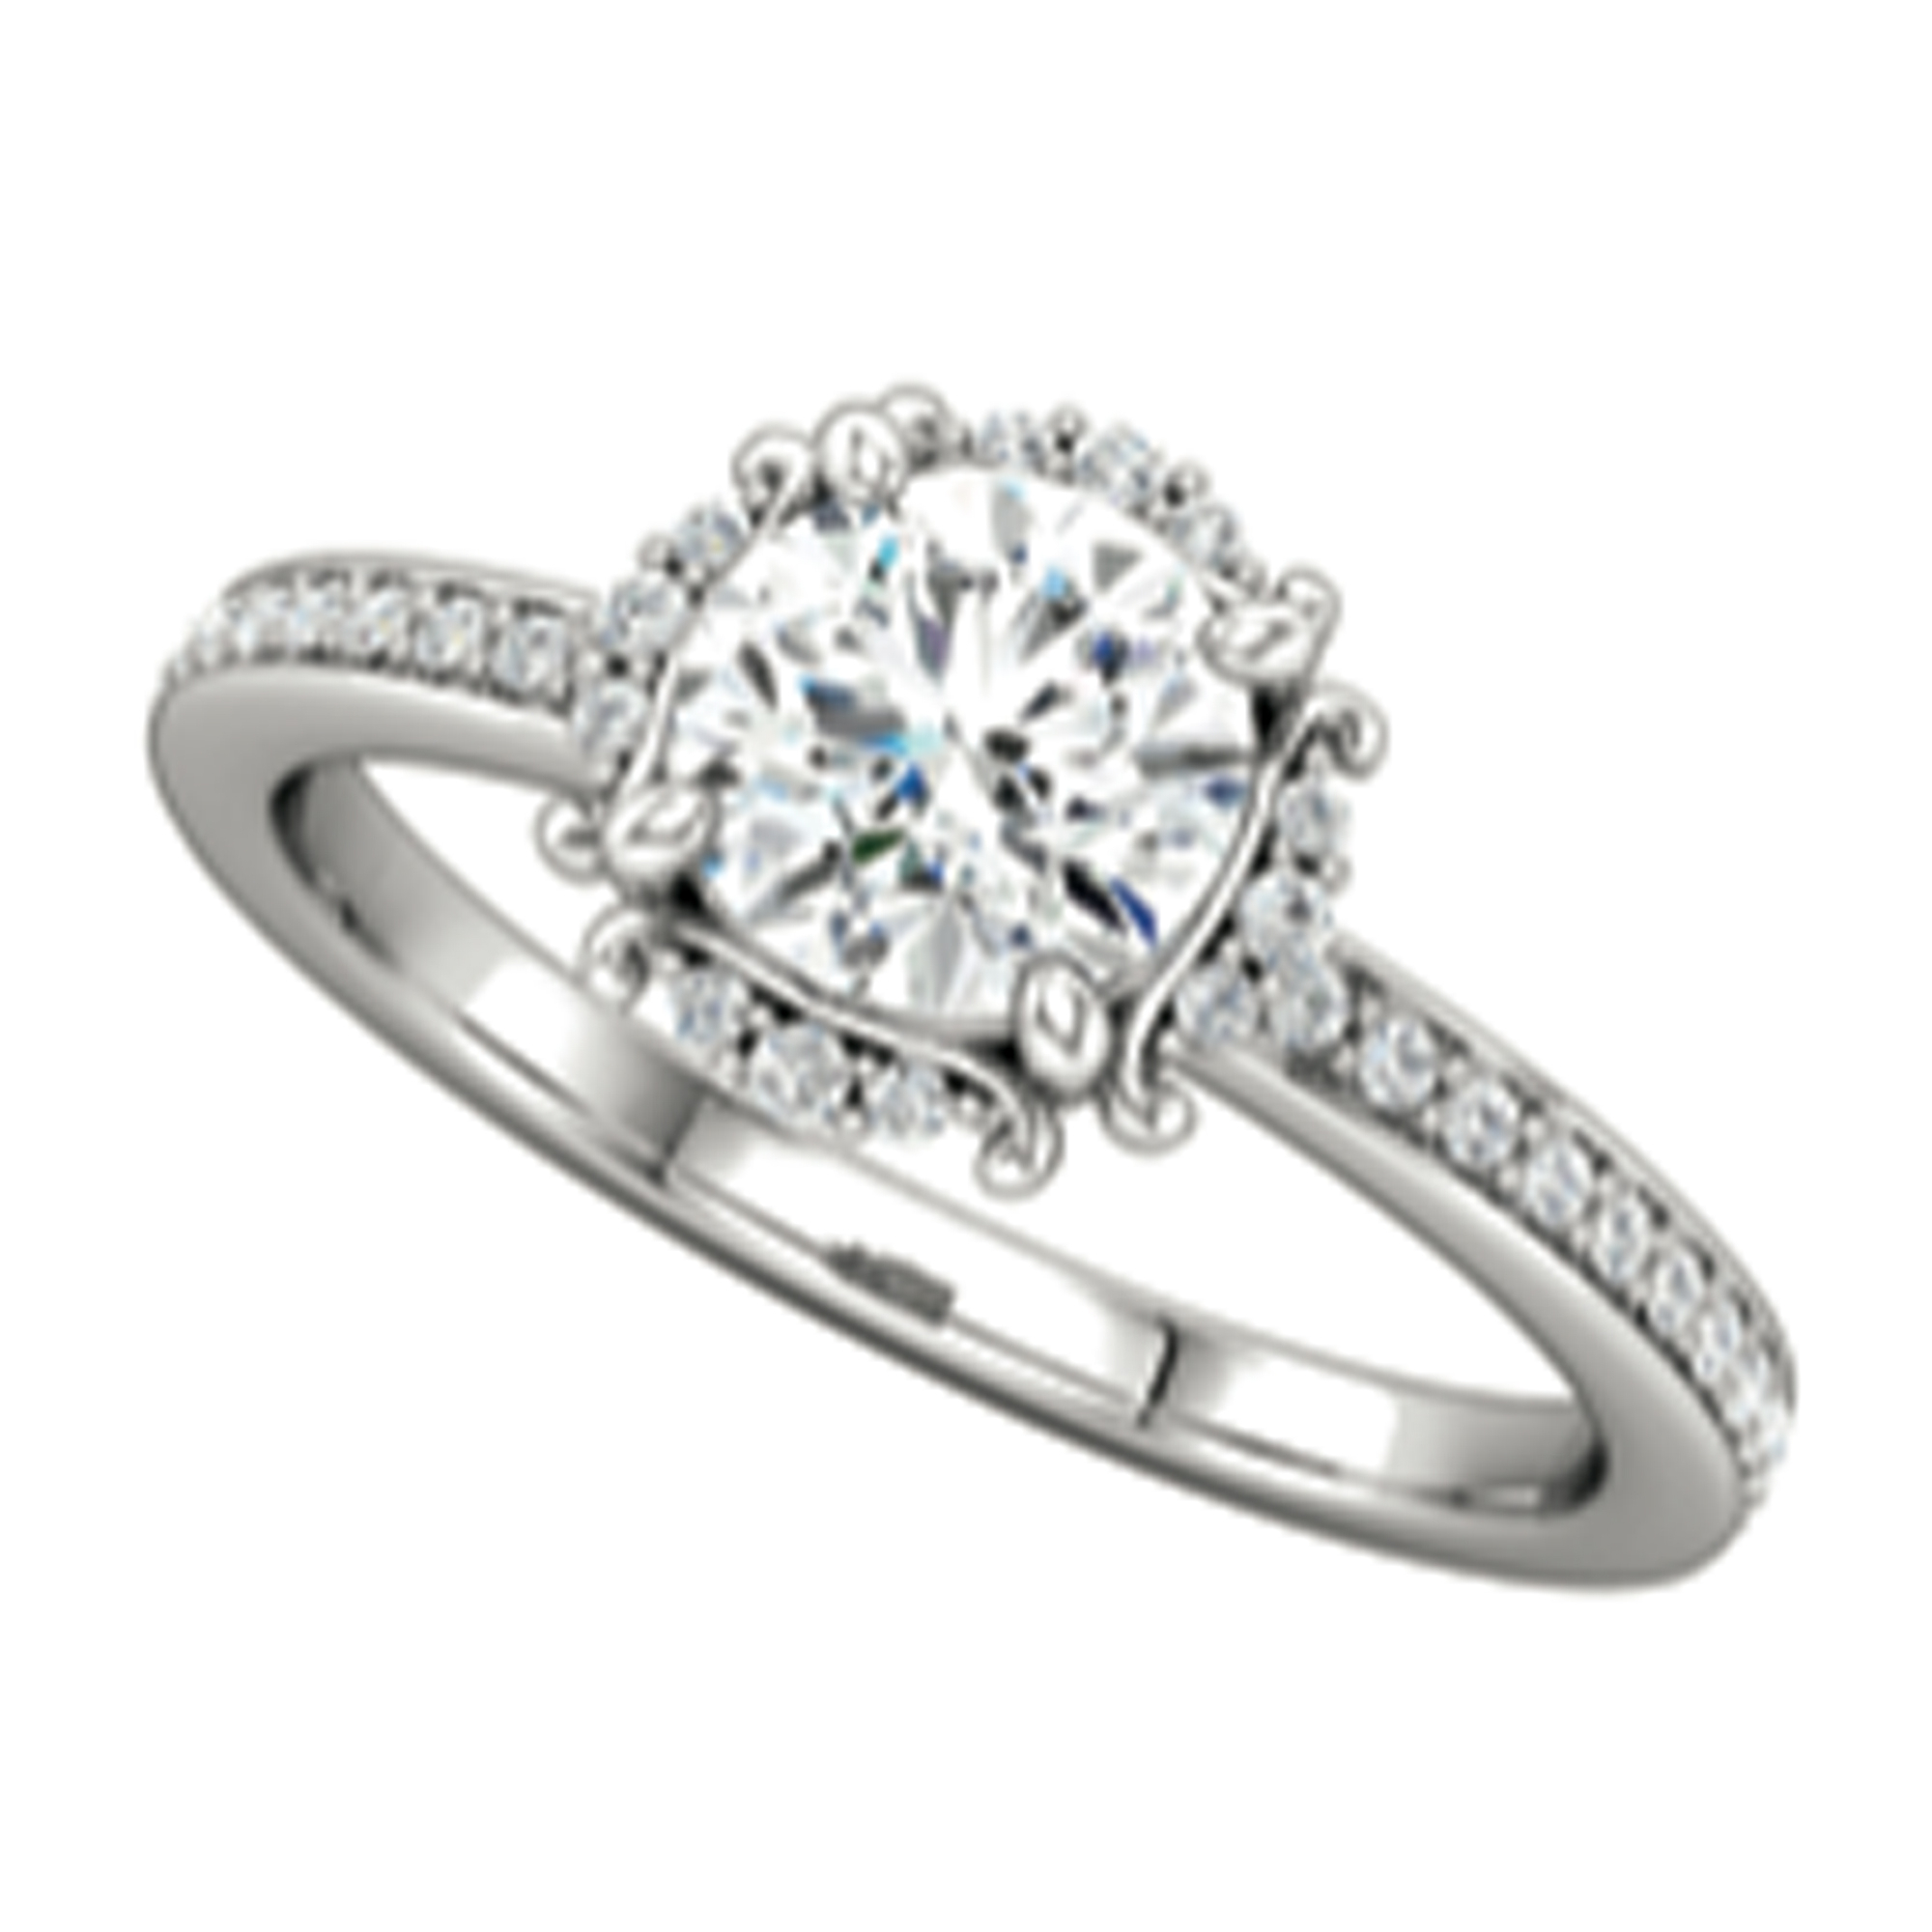 Sparkle Cut Diamonds – Scalloped Halo Engagement Ring | Platinum Regarding Current Sparkling Square Halo Rings (View 20 of 25)